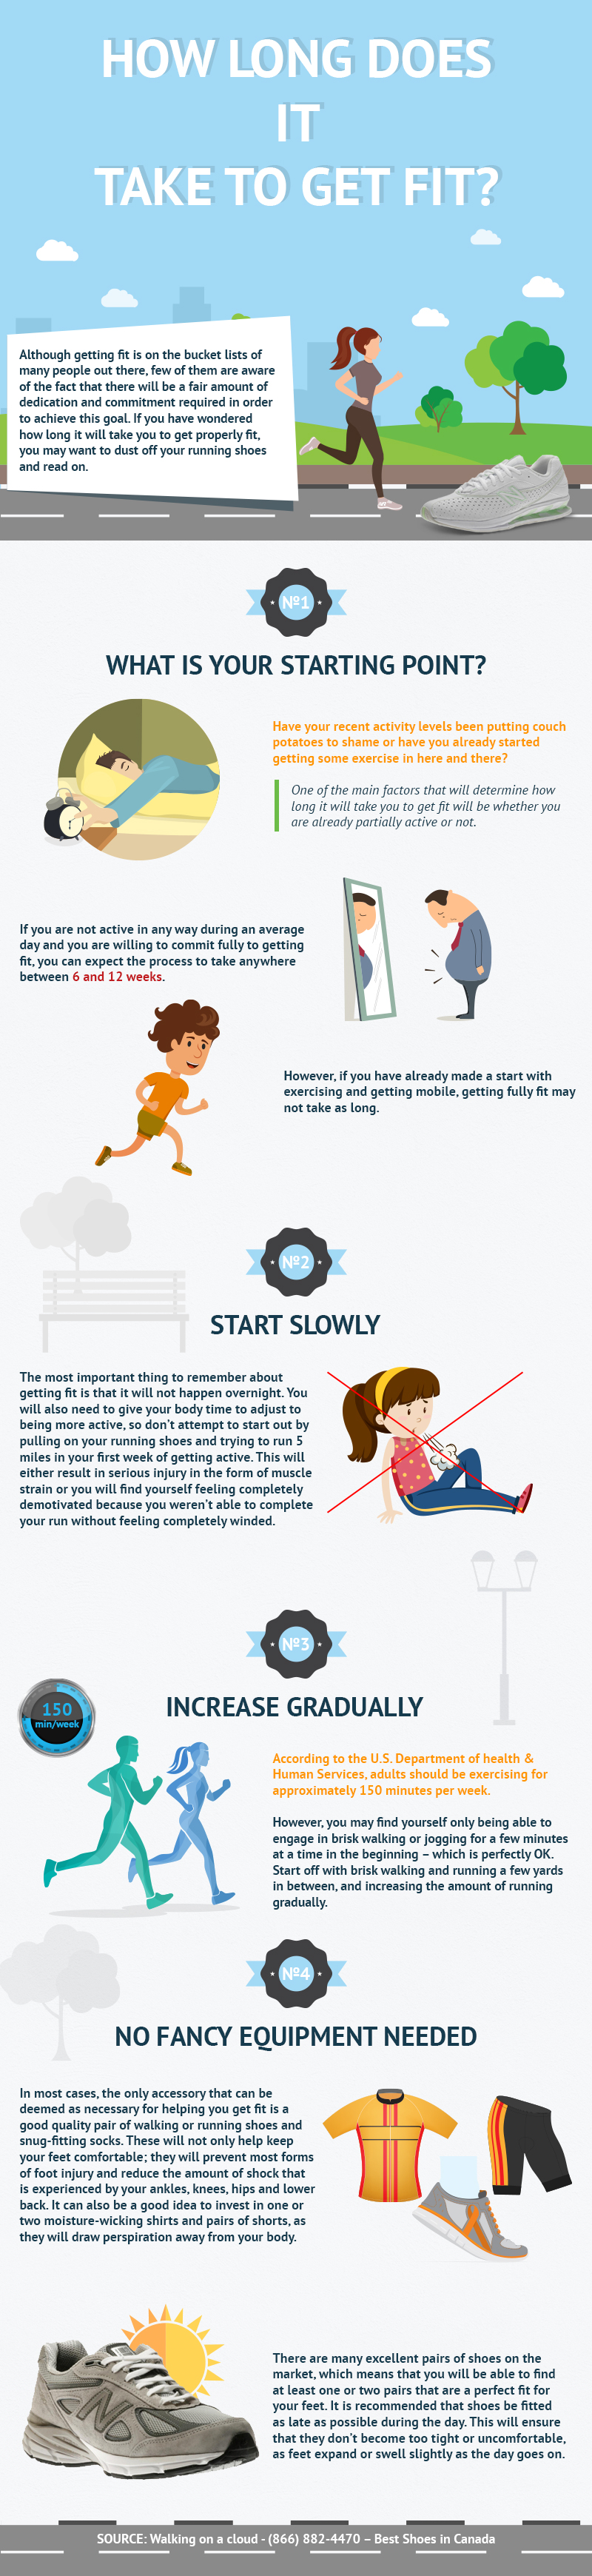 How-Long-Does-it-Take-to-Get-Fit